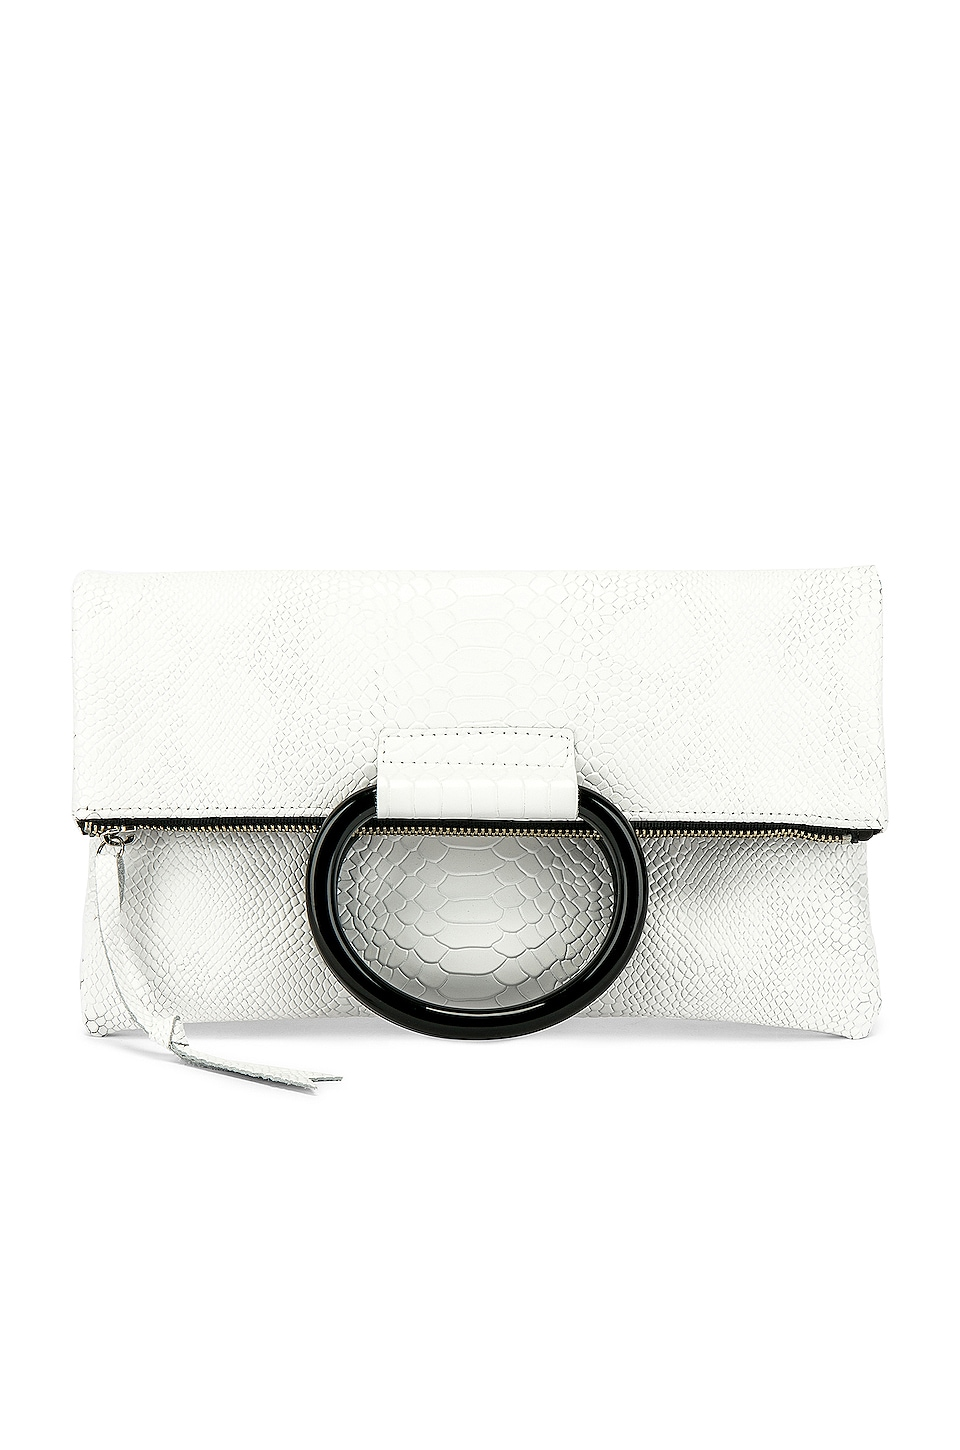 Oliveve Jolie Clutch in White Snake